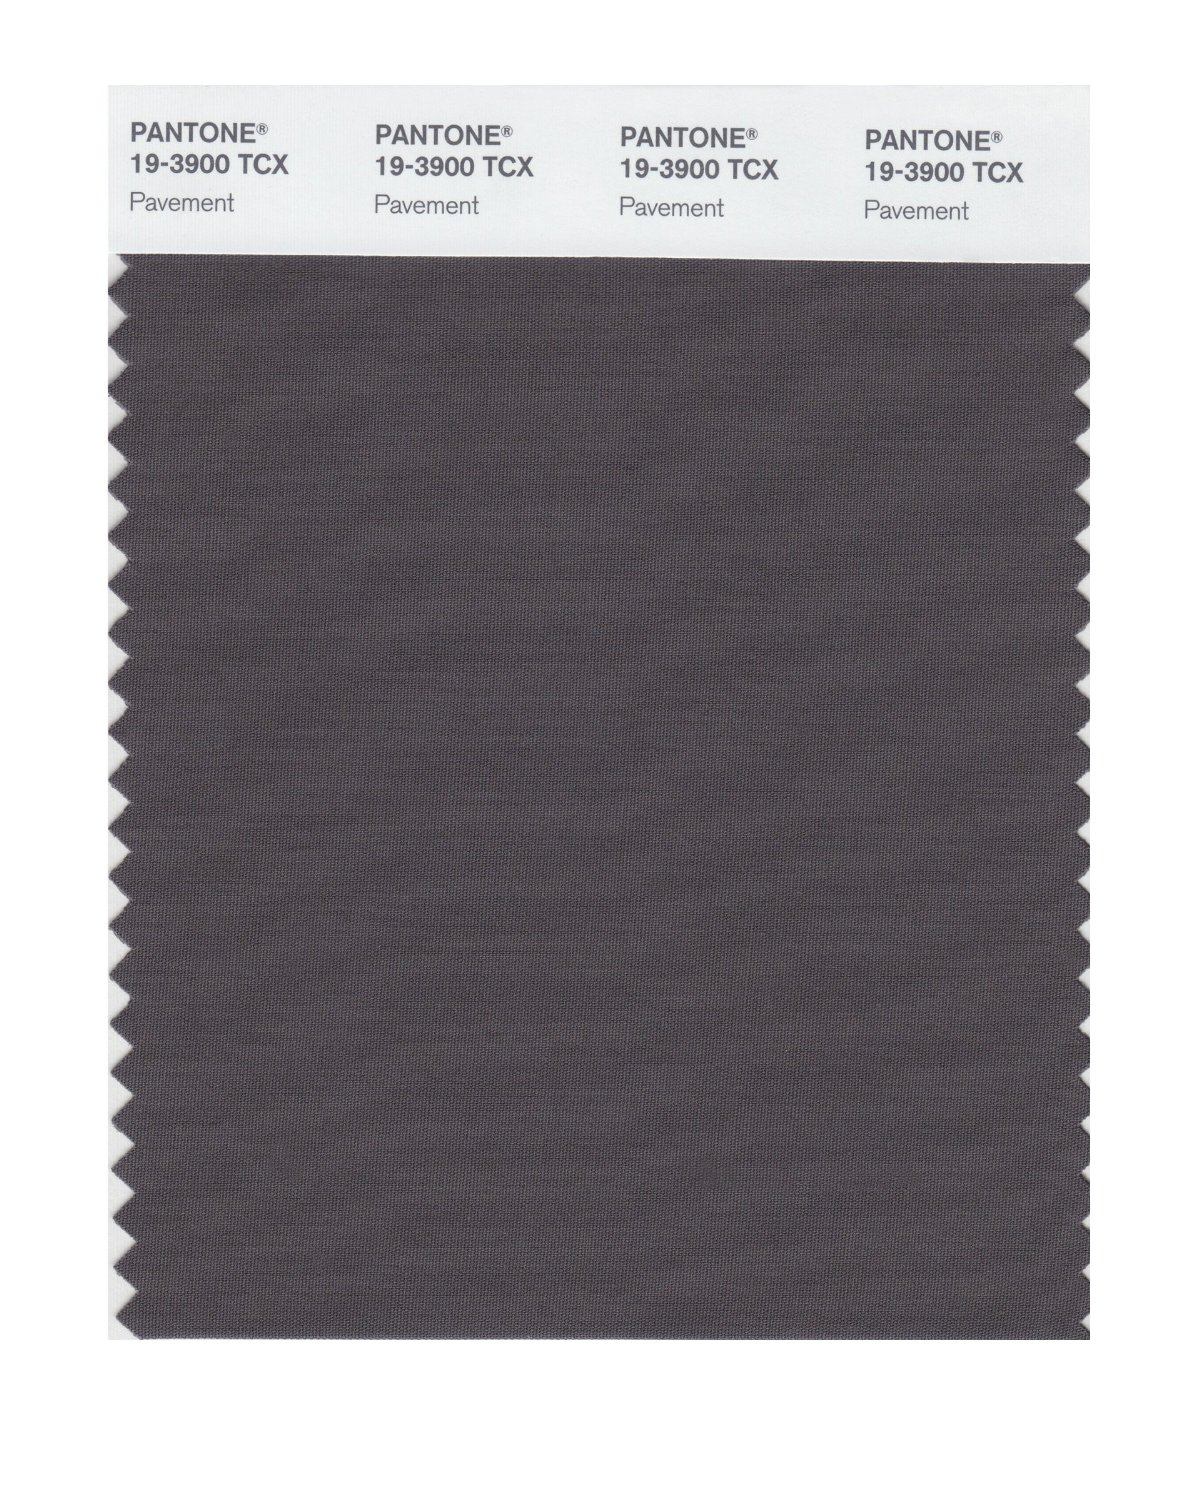 Pantone Smart Swatch 19-3900 Pavement